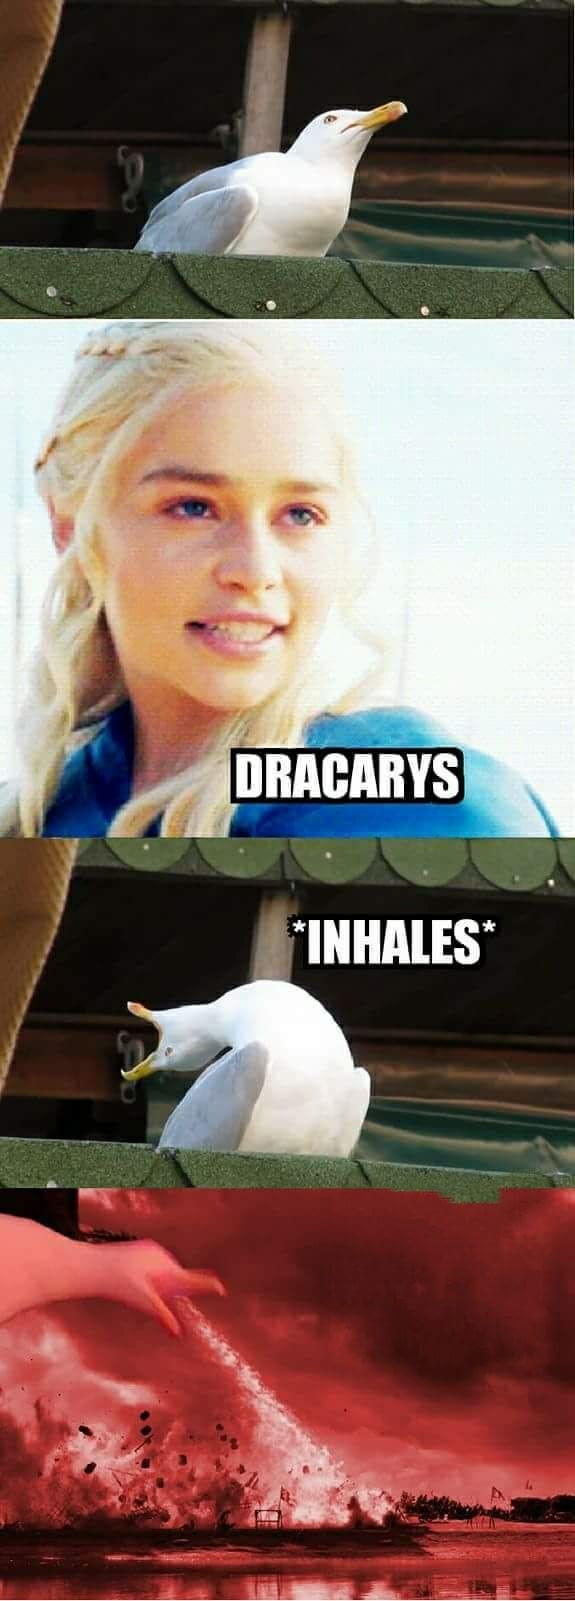 http://www.friendbookmark.com/images/GOT/game-of-thrones-funny-memes-35.png